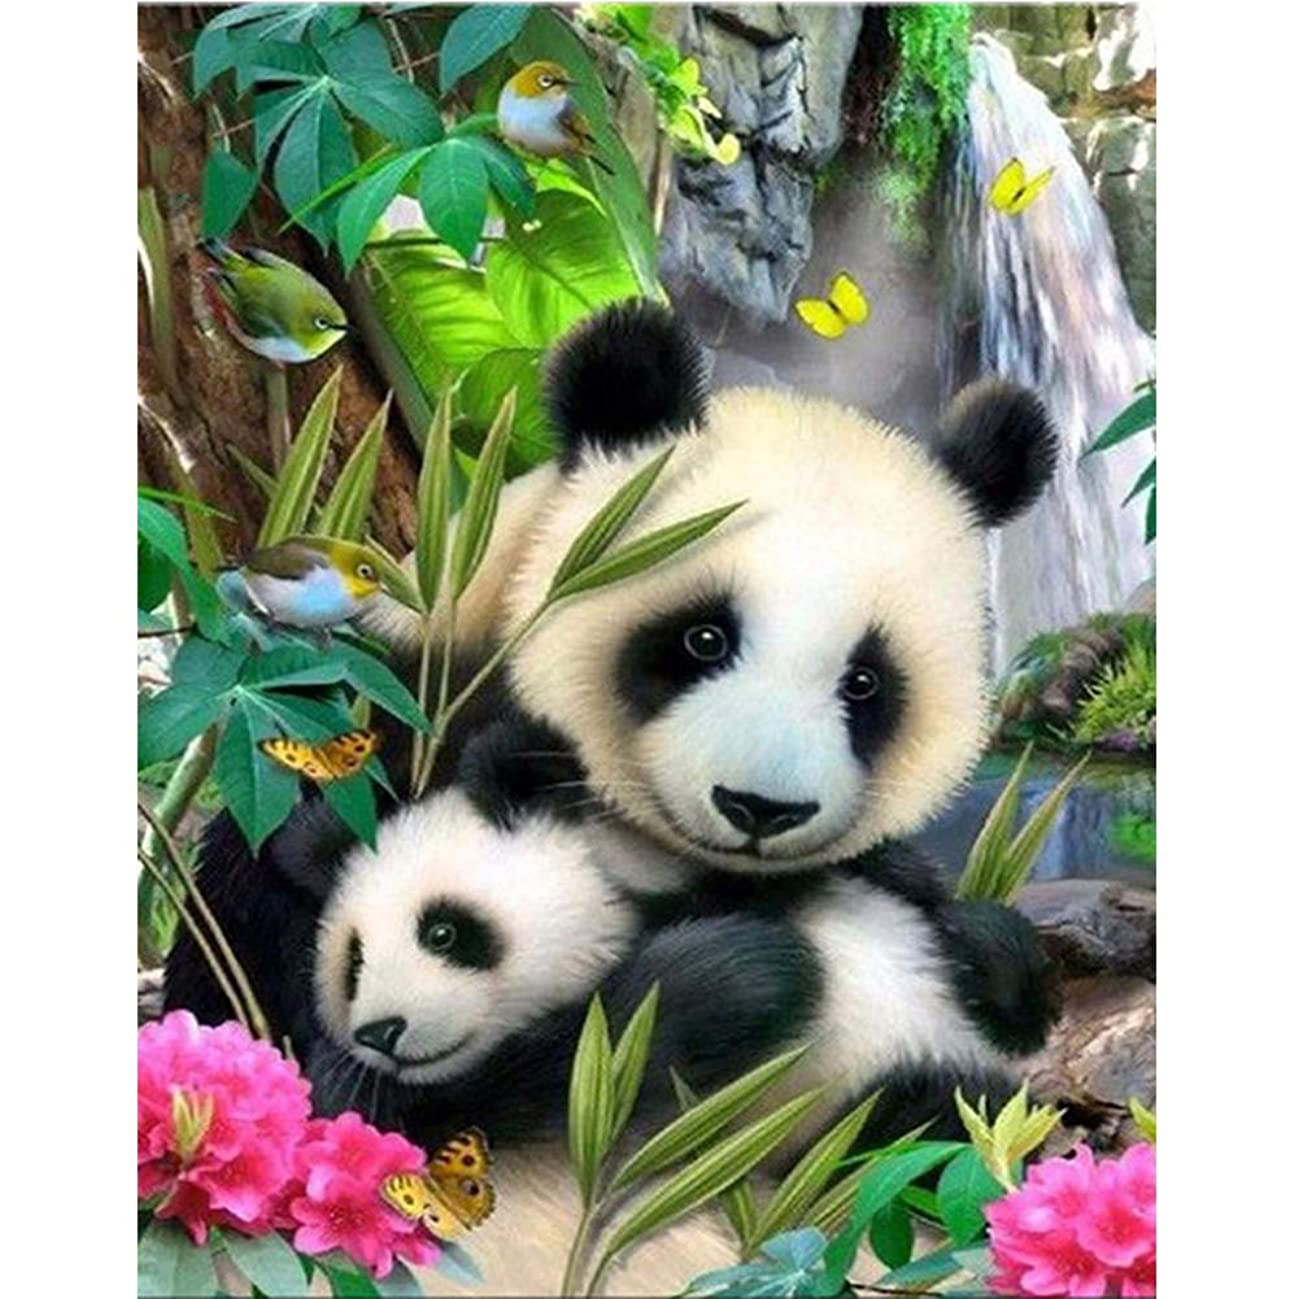 DIY 5D Diamond Painting Kit,Full Drill Round Drill Rhinestone Animal Panda Painting Living Room Study Shower Room Painting Wall Home Decoration Christmas Gift Cross Stitch Art Craft Work